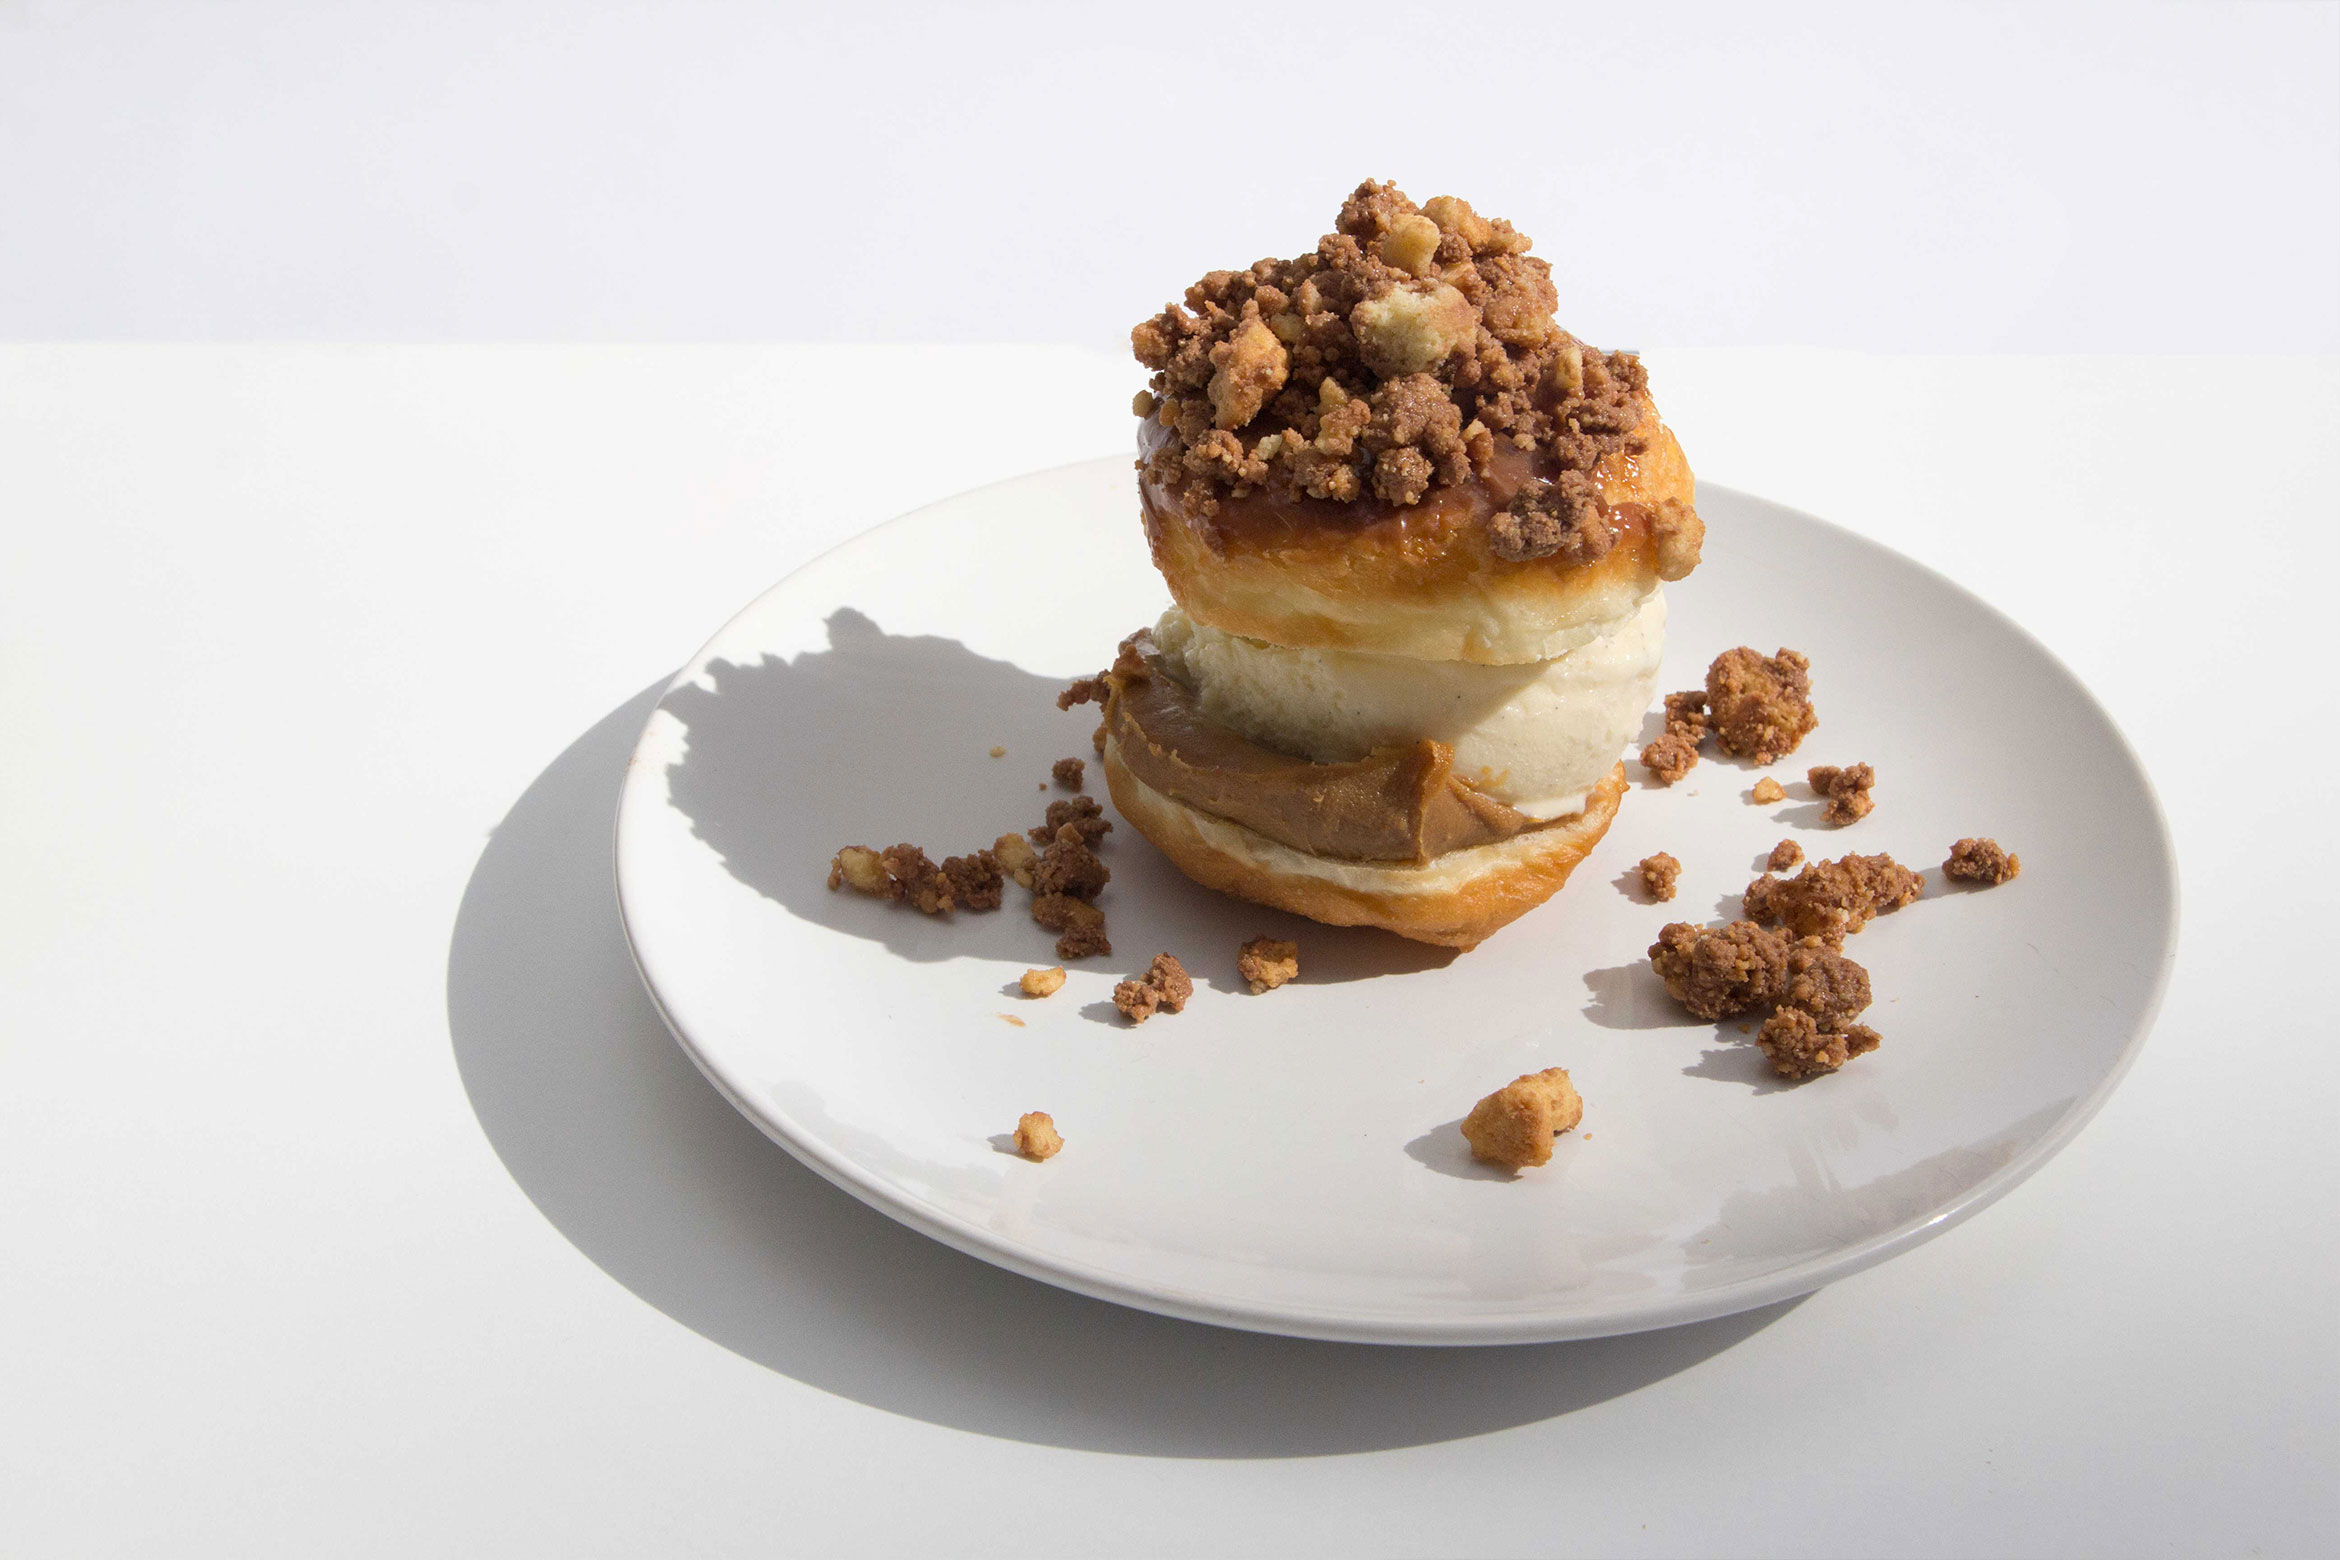 DUNCAN'S DOUGHNUT BAR - Messina gelato filled doughnuts for Sydney Festival